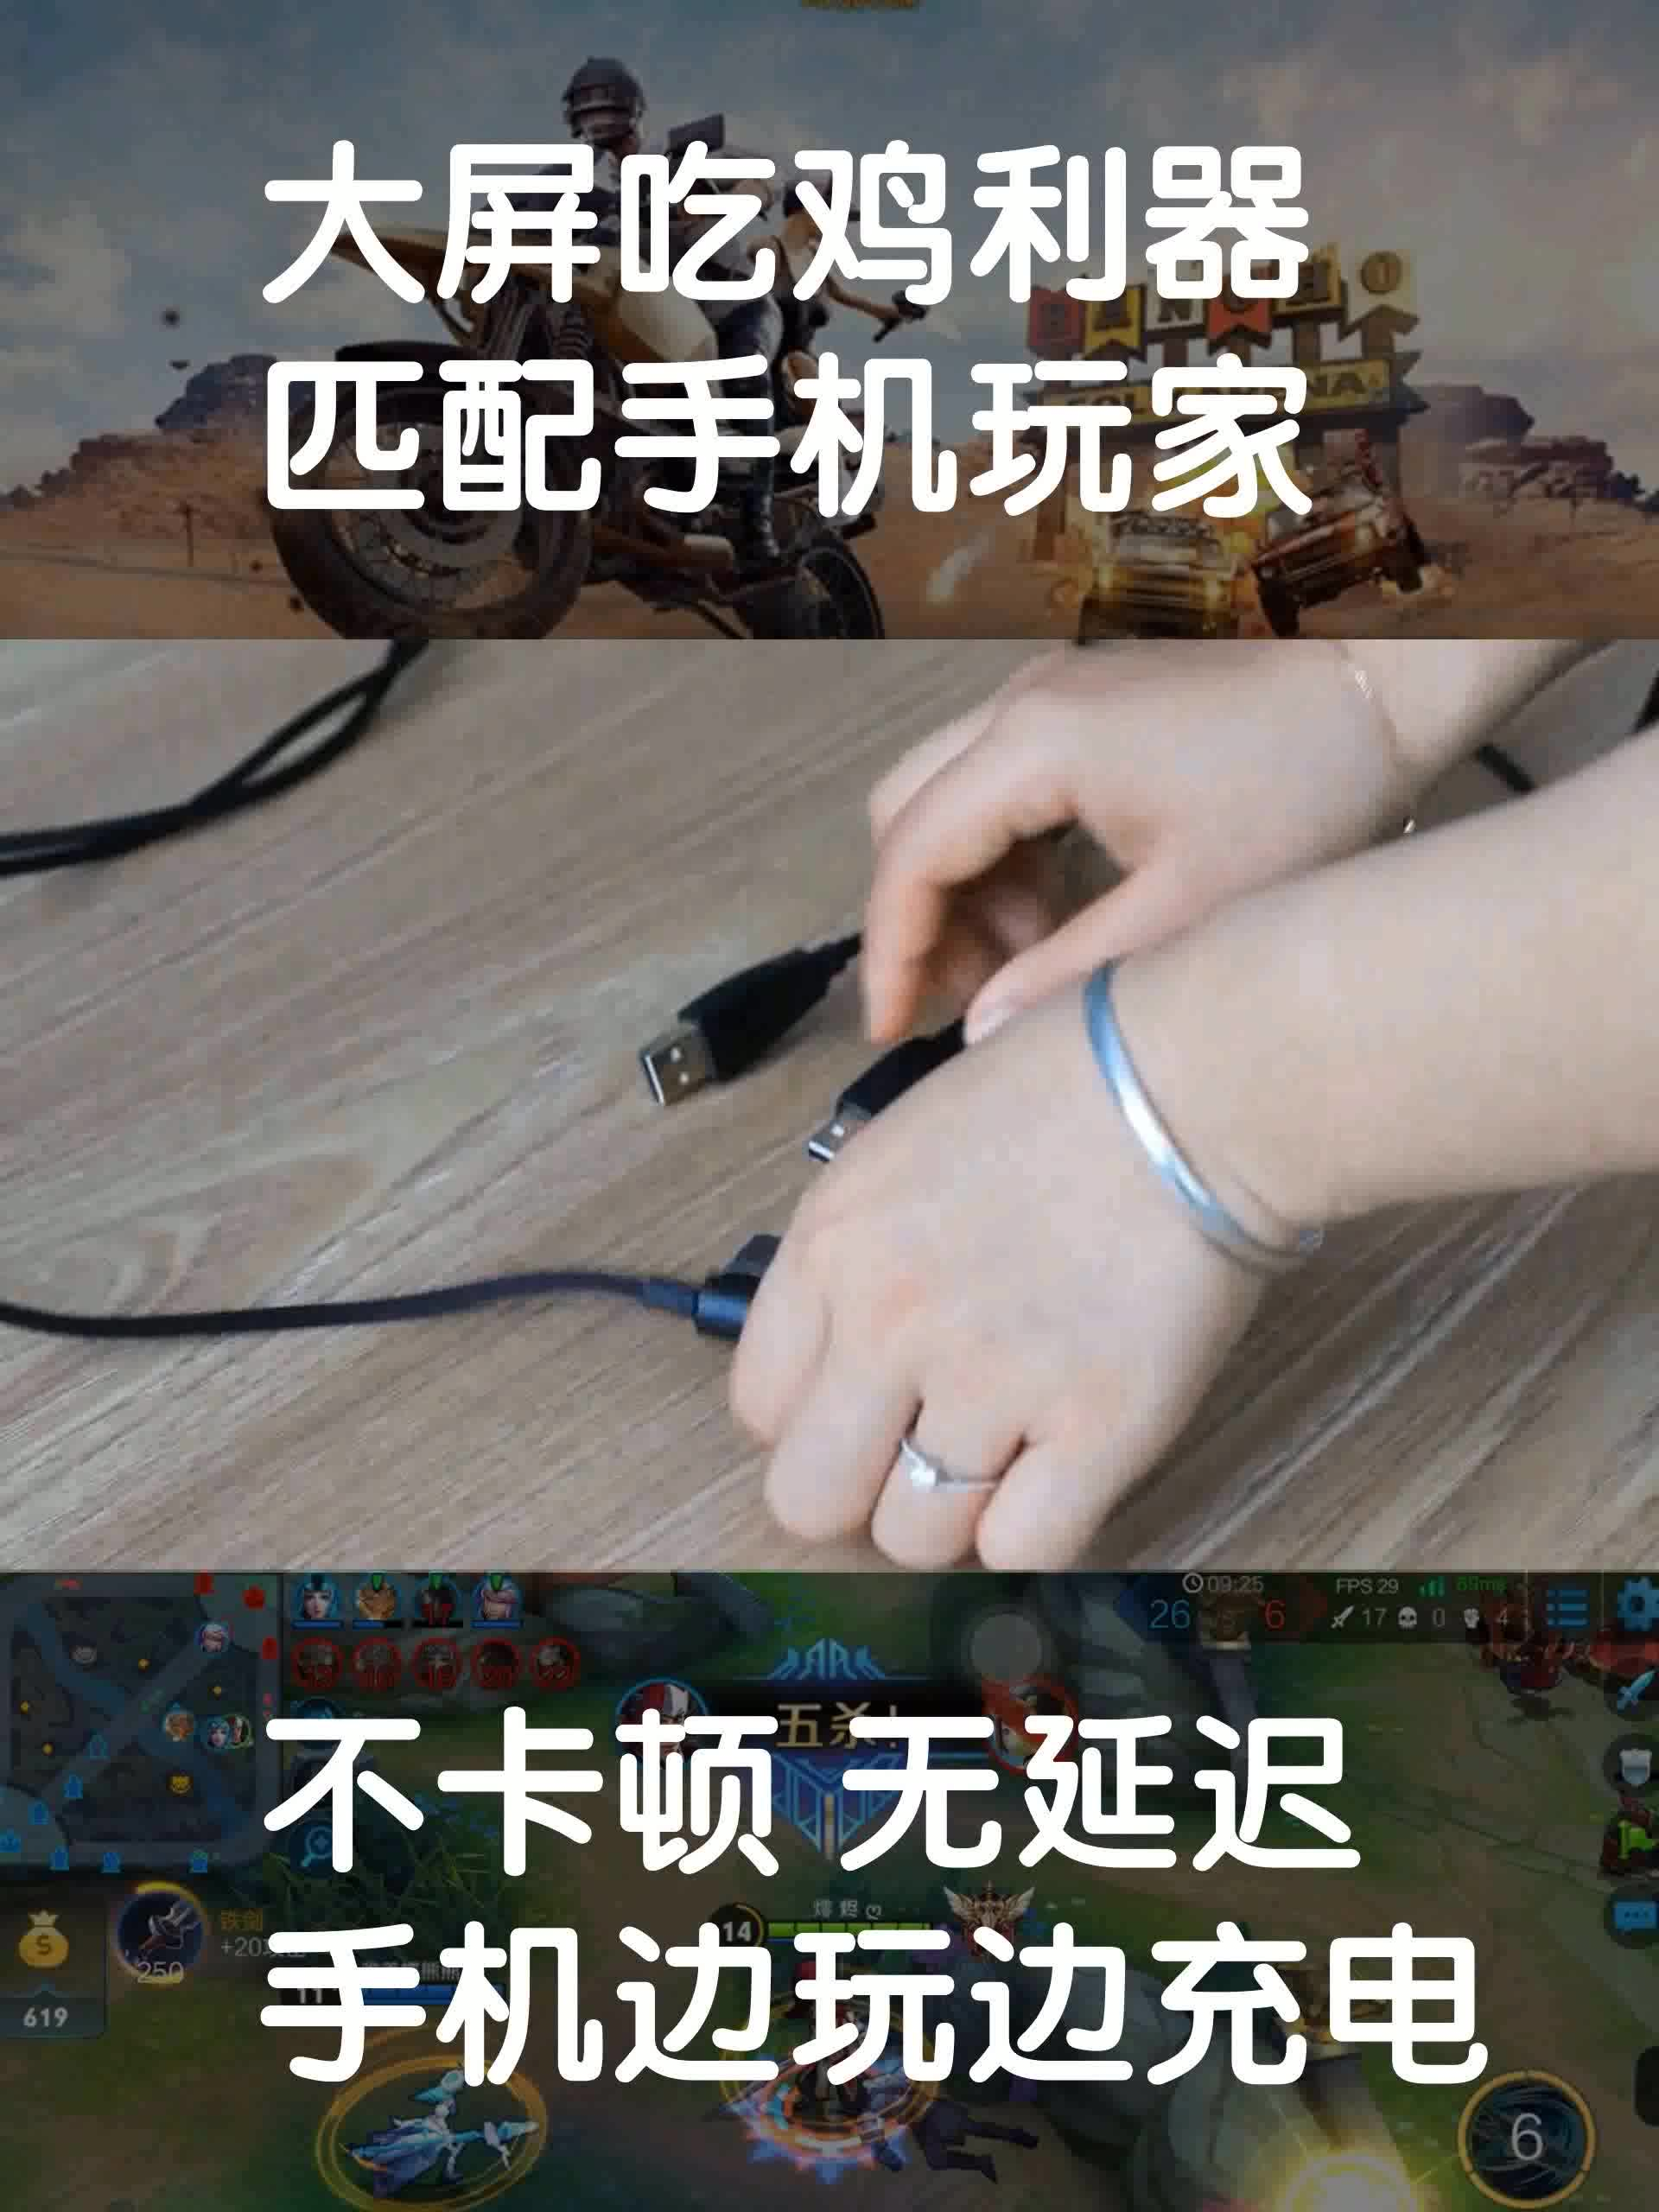 Battlegrounds Game Extender X9 Ezcast 4k Miracast HD Dongle for Moible Game